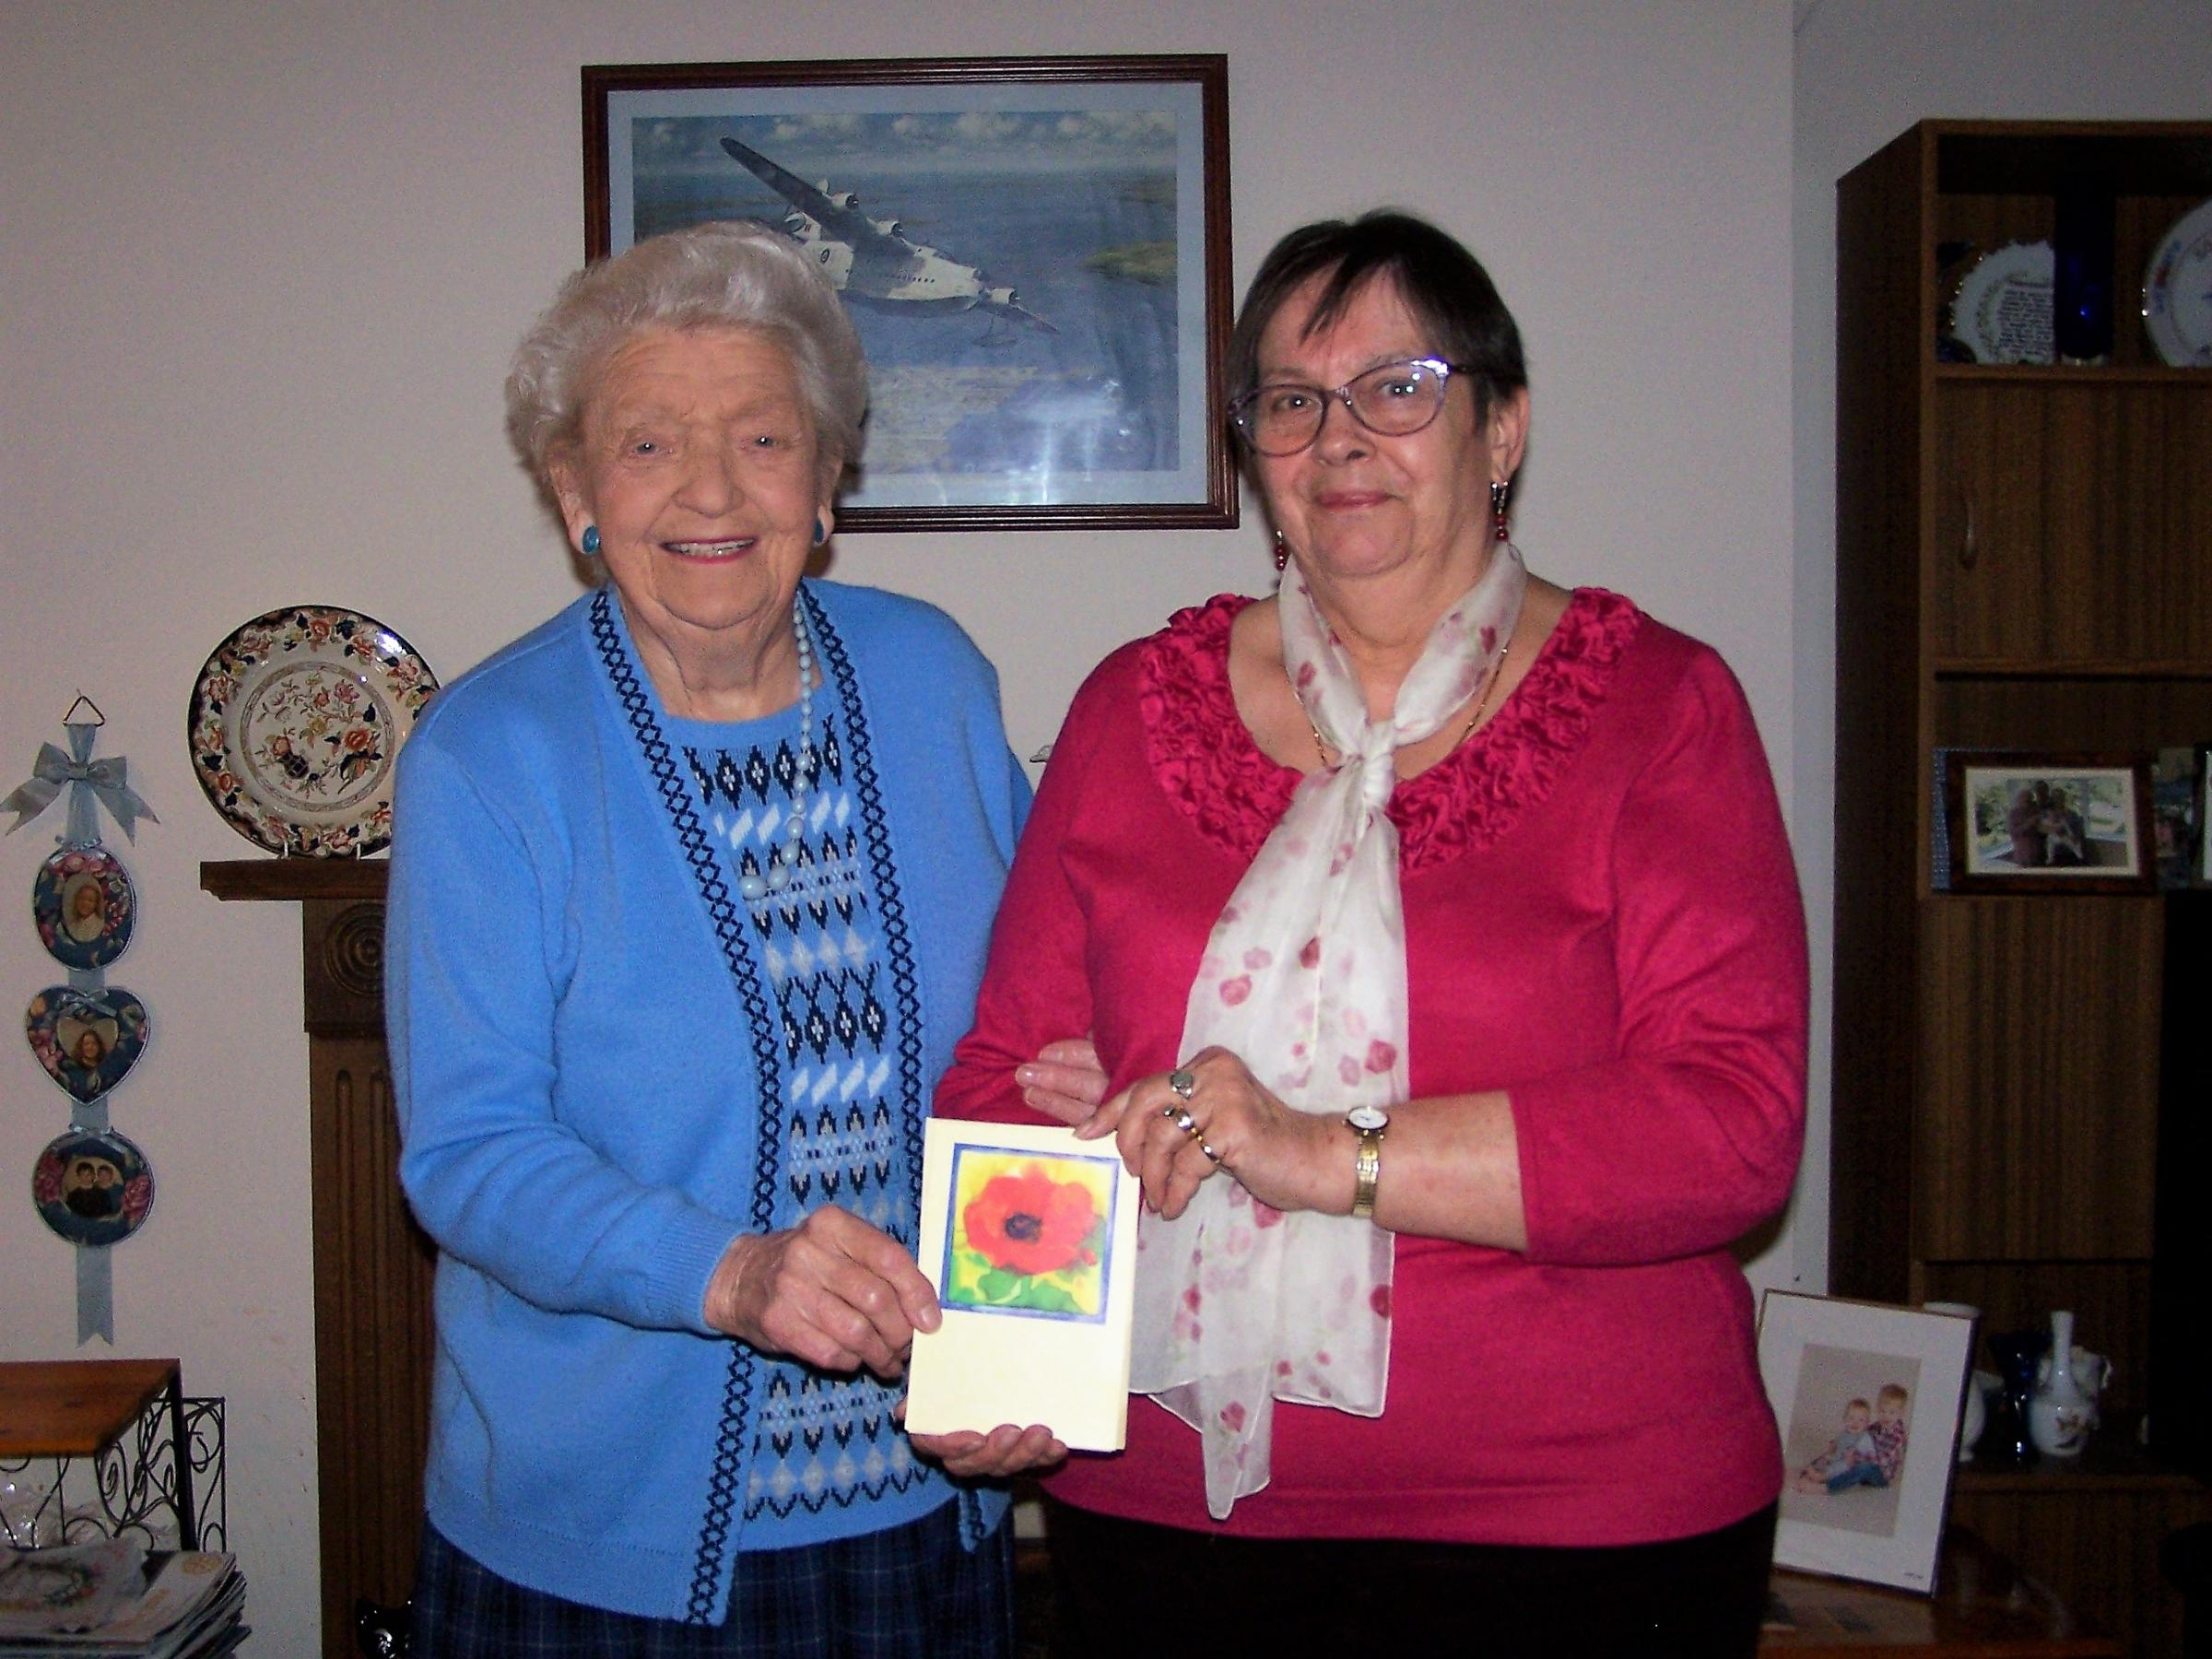 Marjorie Davies is pictured donating the cheque for £780 to Maimie Davis of the Motor Neurone Disease Association.